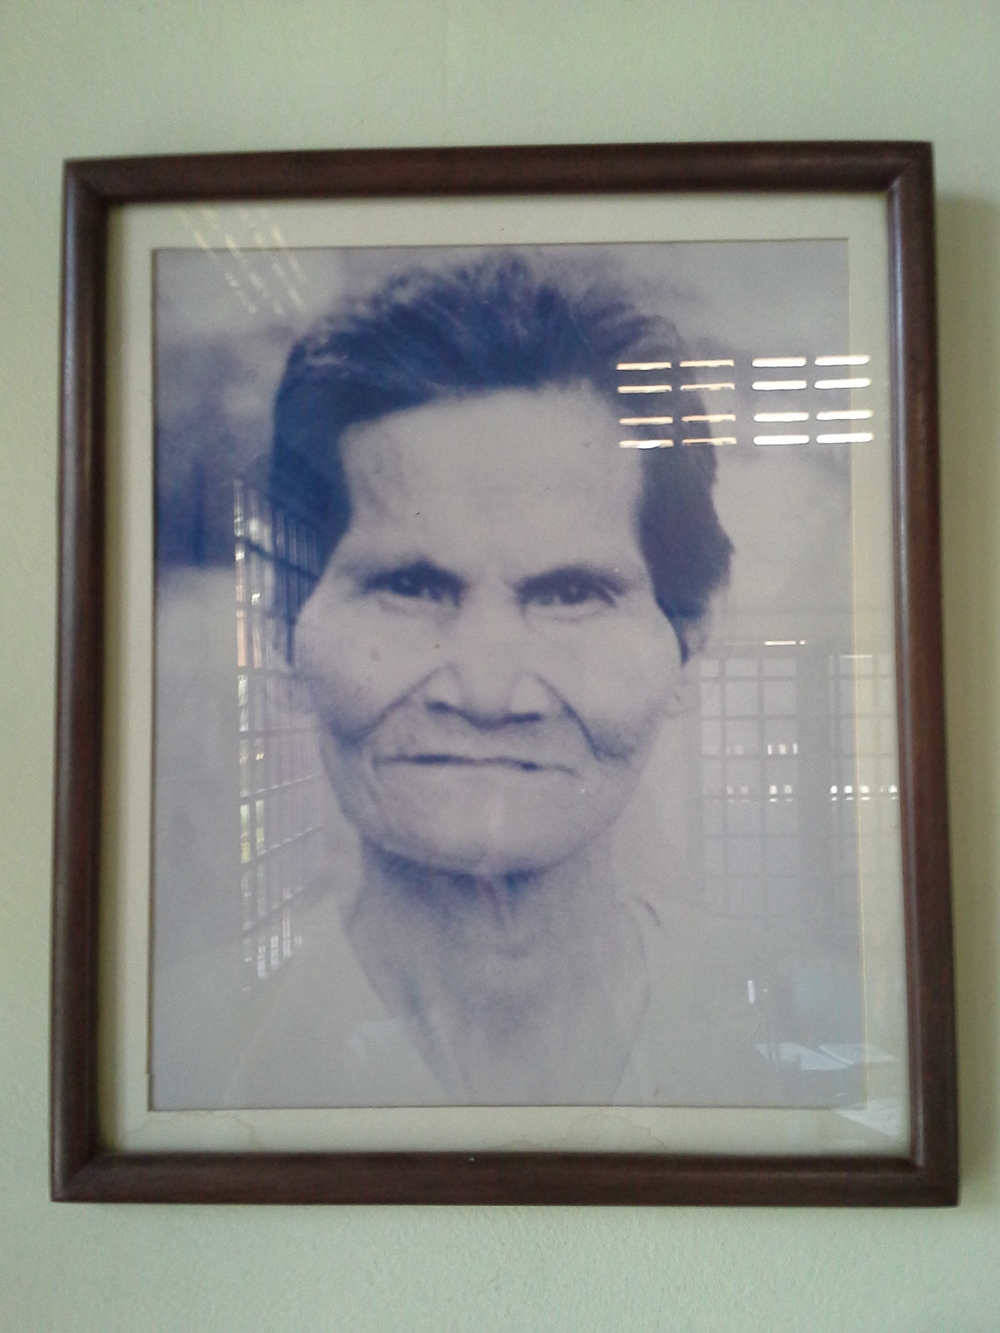 Photo of Sok Samith's mother